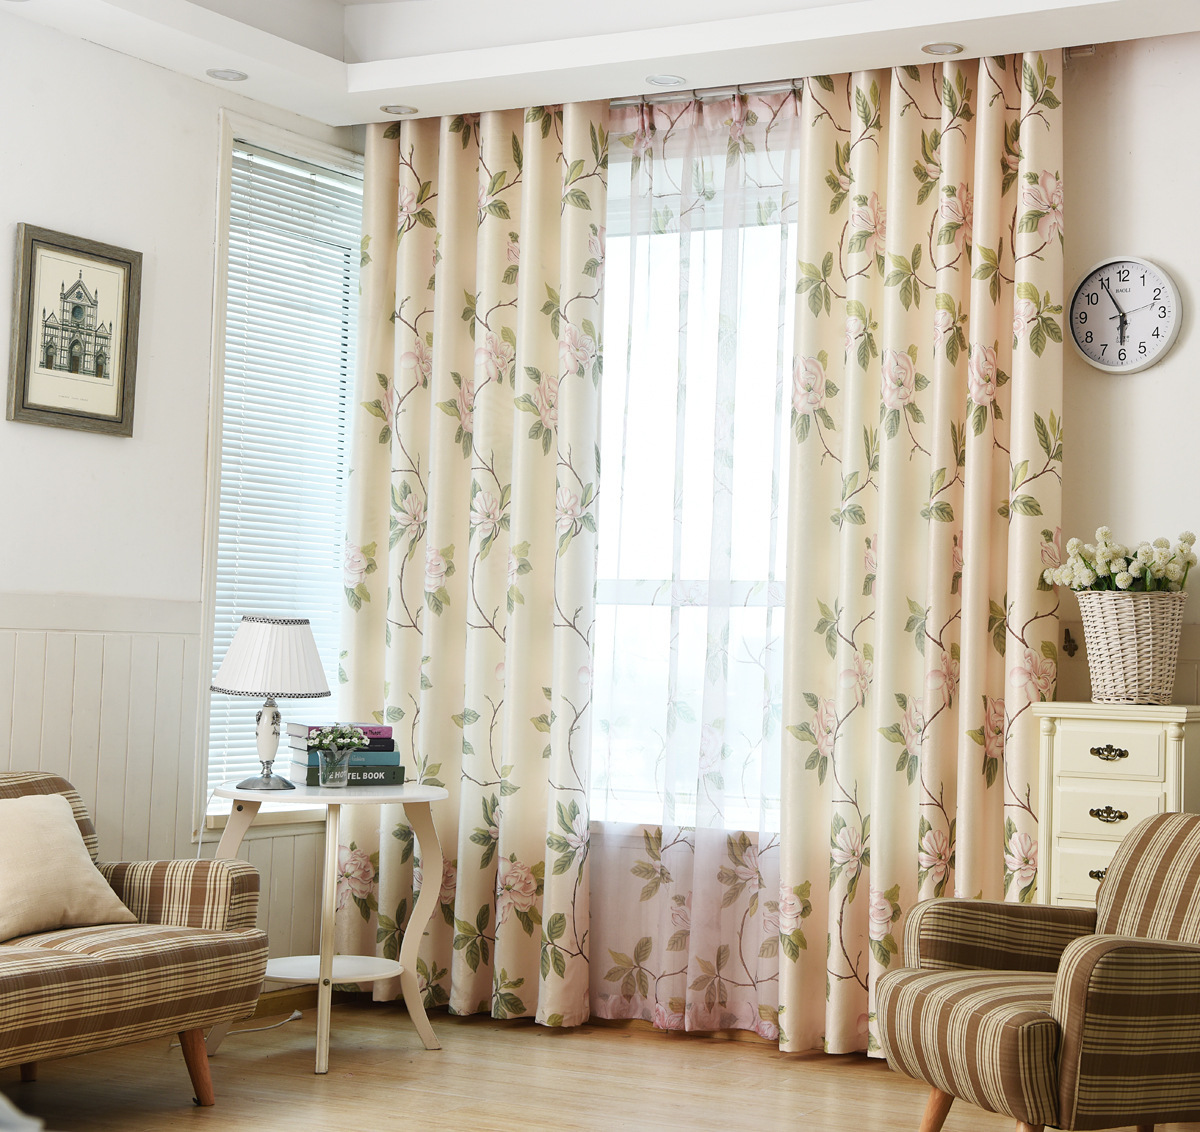 Dining room country curtains - American Style Country Style Cloth Suede Print White Silk Fresh Shade Curtains For Living Dining Room Bedroom